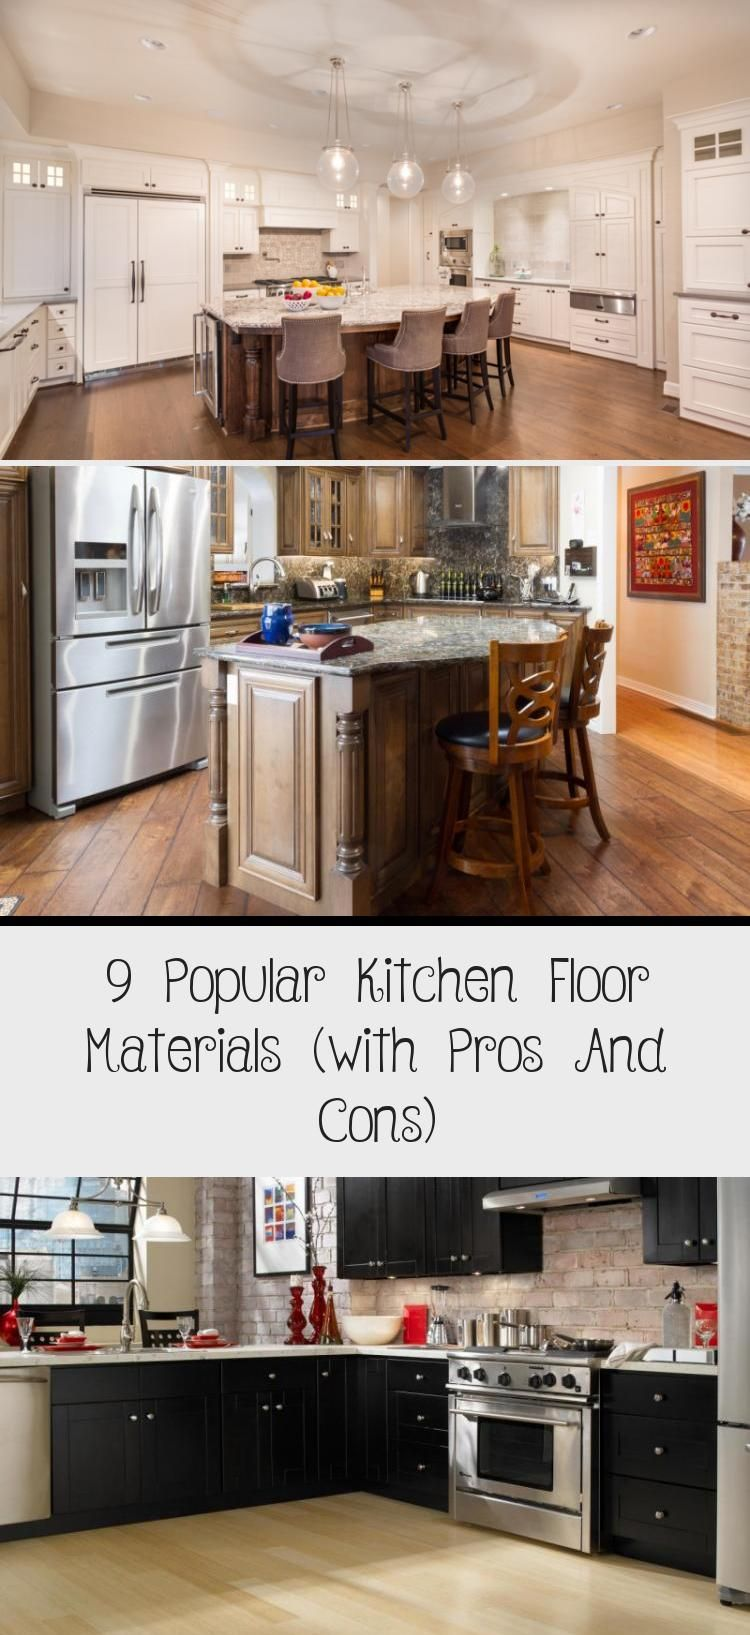 9 Popular Kitchen Floor Materials With Pros And Cons Kitchen Tiles Design Popular Kitchens Country Kitchen Tiles